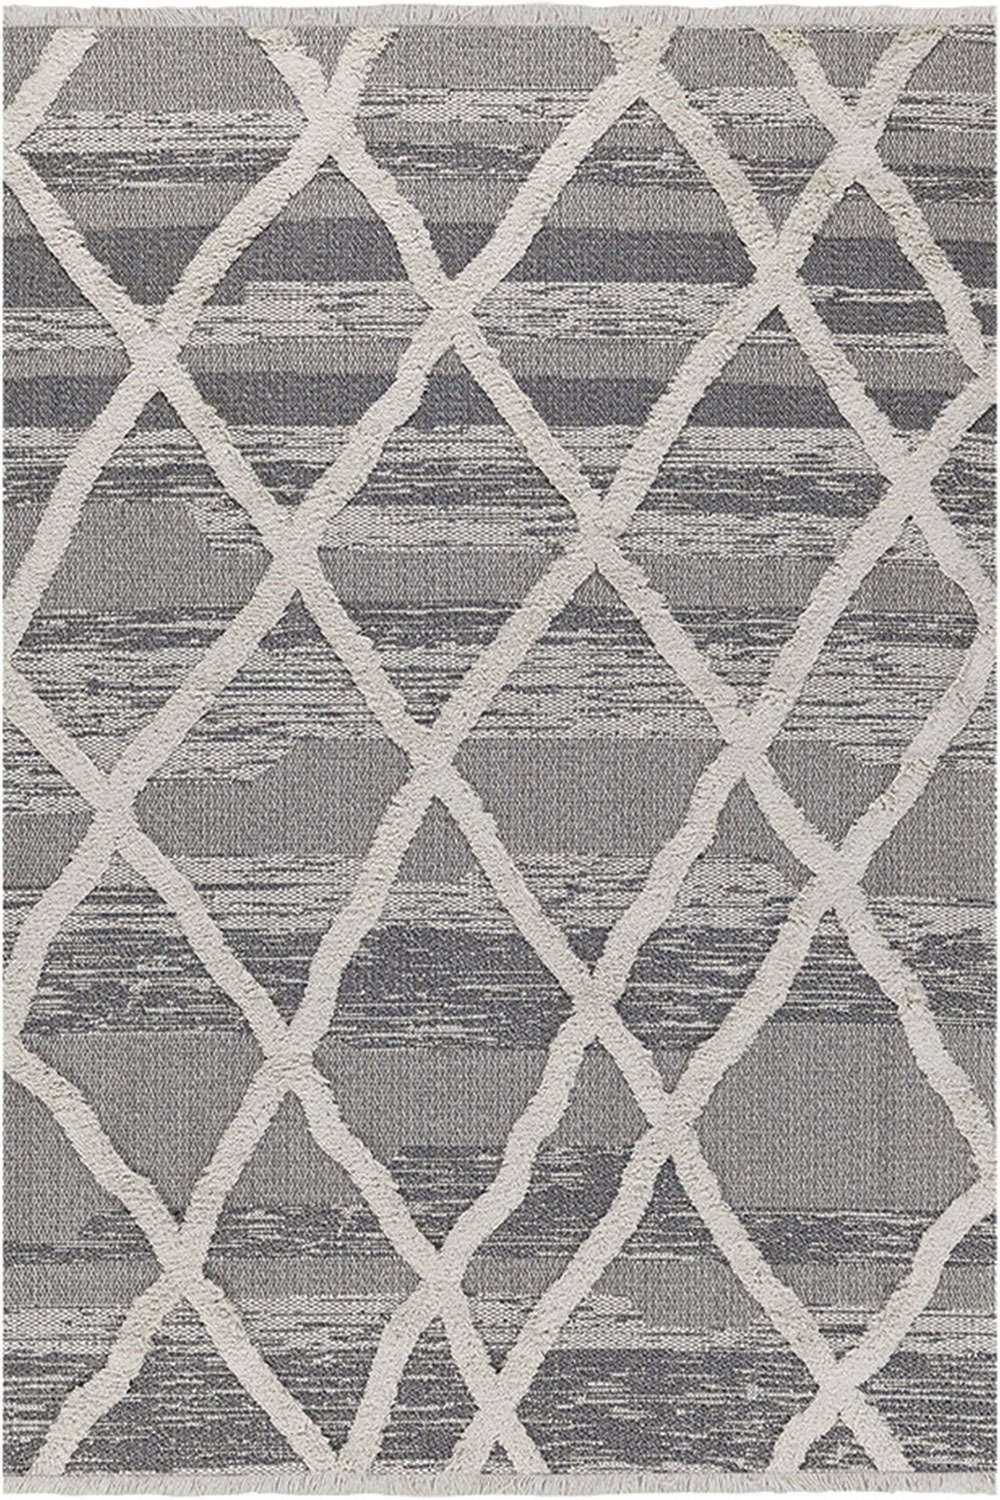 Χαλί Casa Cotton 22317 Grey-Black Royal Carpet 70X220